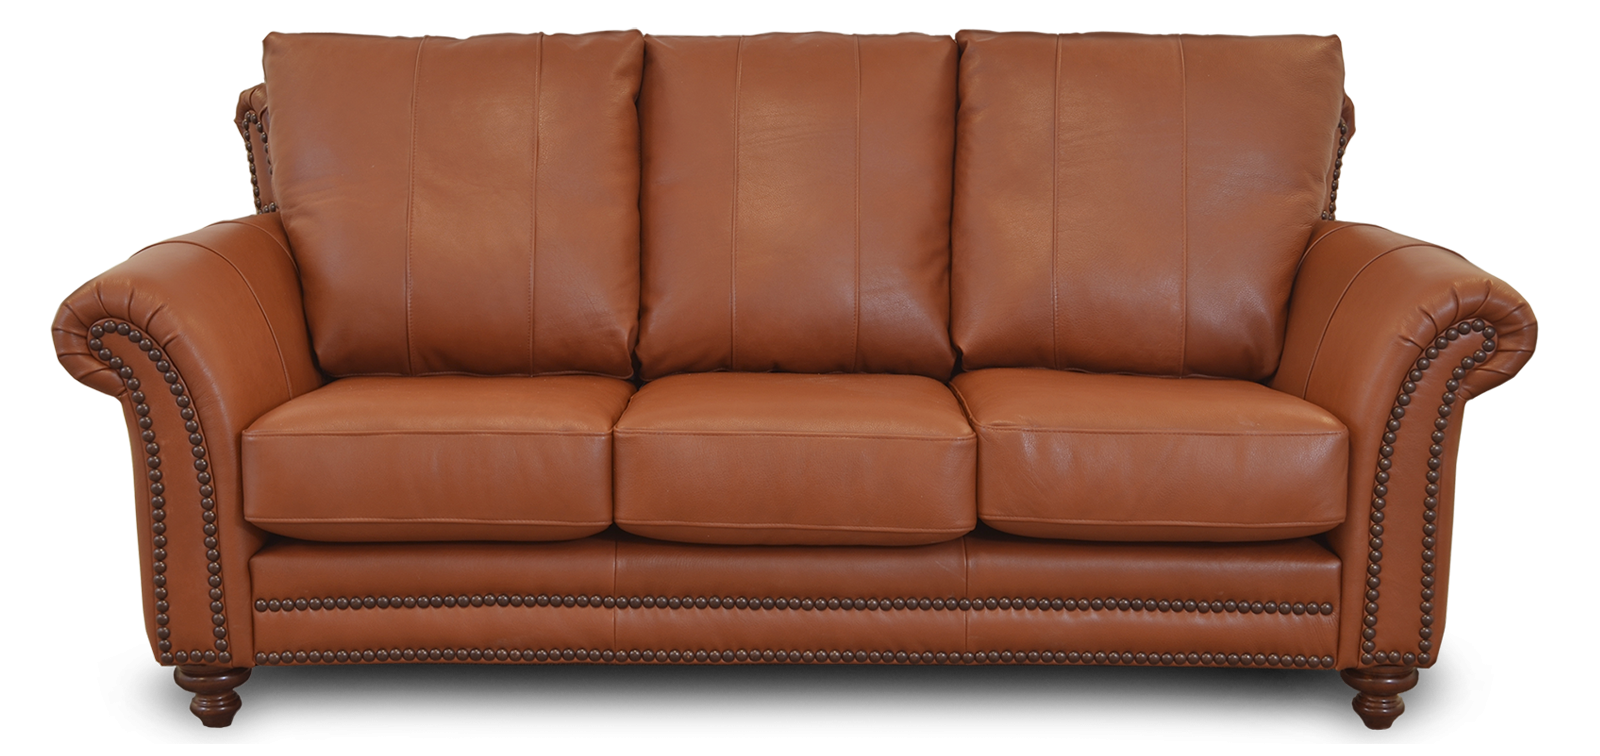 The Leather Sofa Co reviews | 1280 West Main St - Lewisville TX